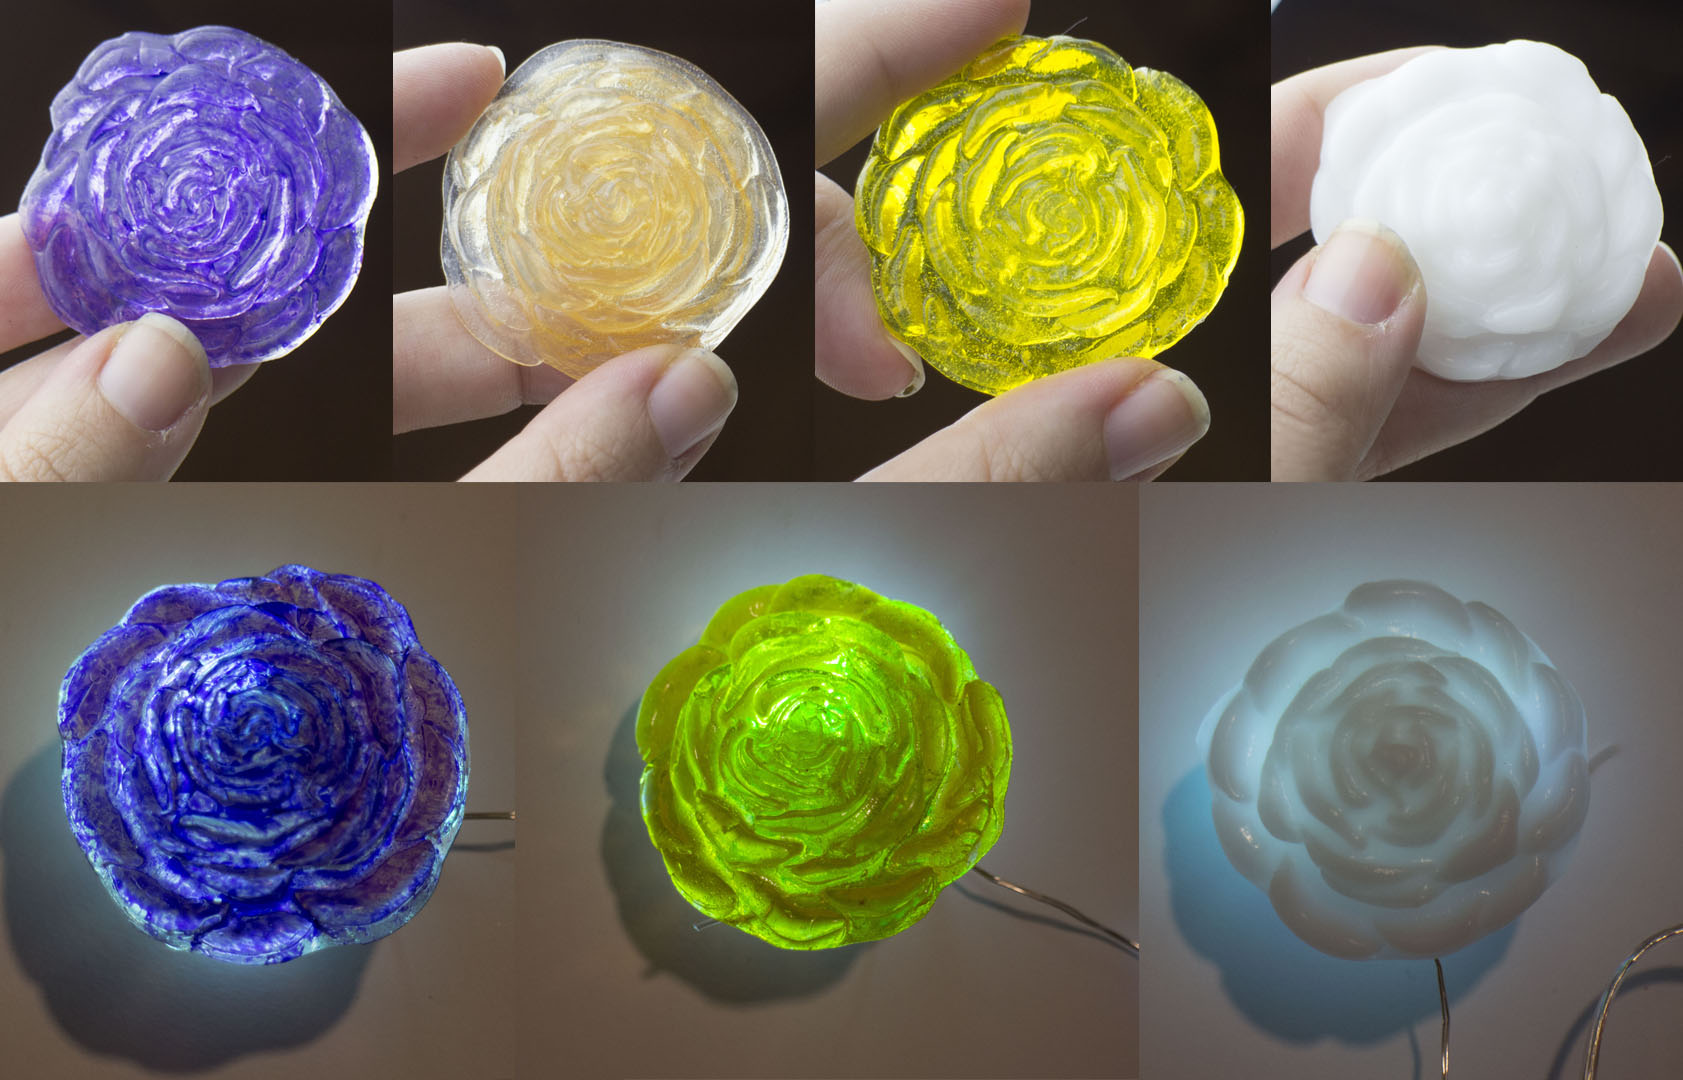 Various roses cast with Crystal Art and different coloring methods. Far right rose is Deco Art.